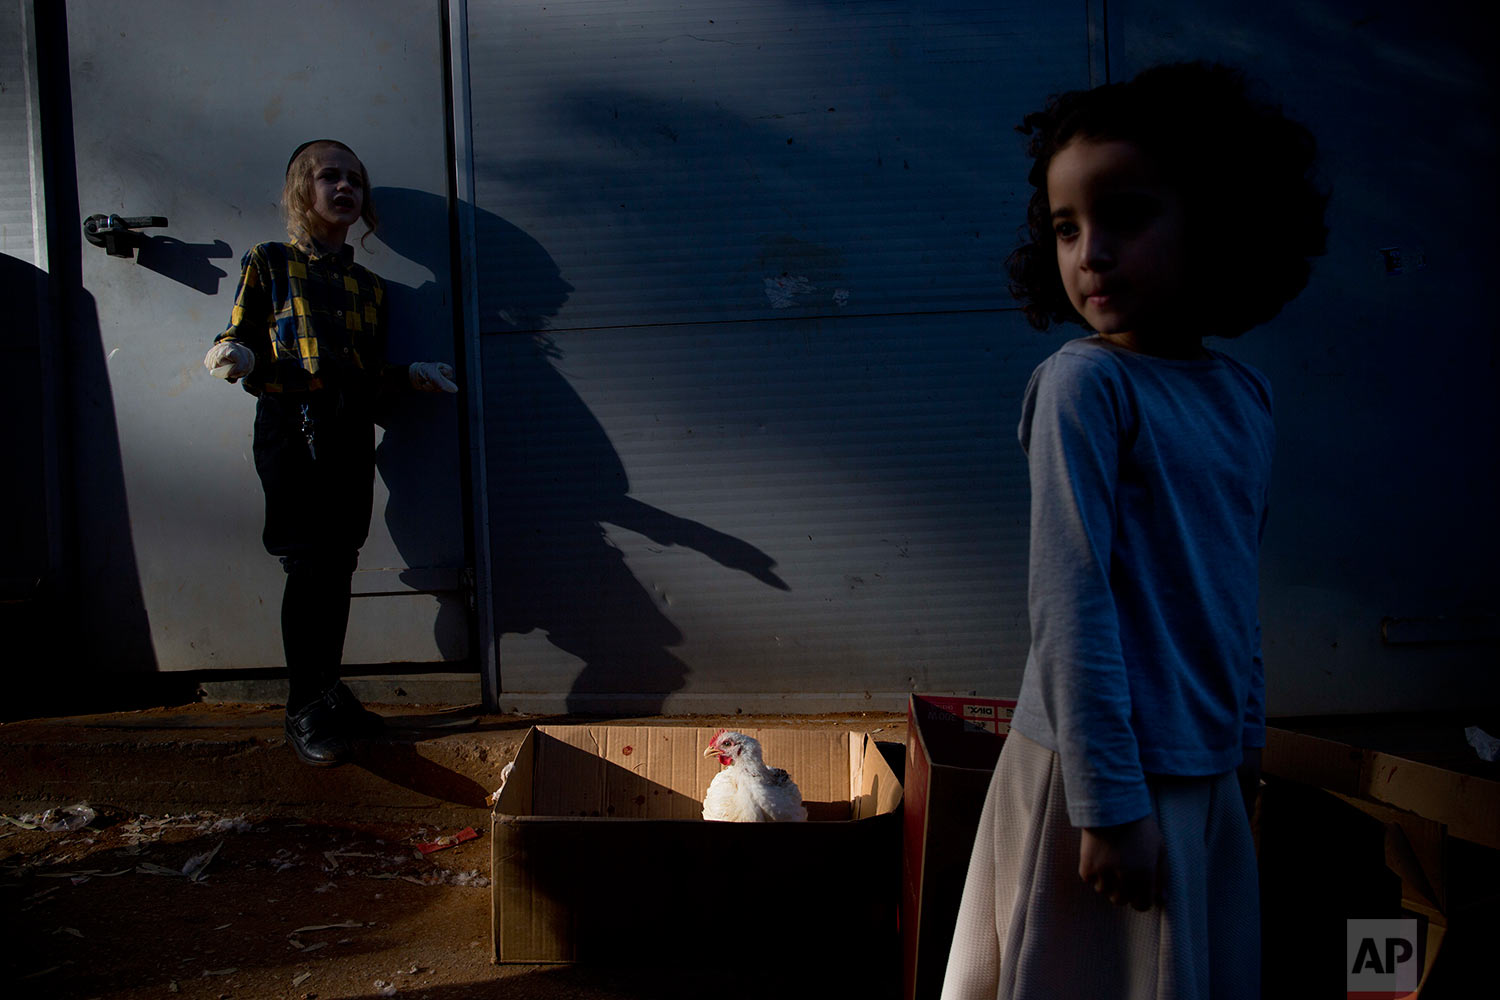 An ultra-Orthodox Jewish youth stands next to his chicken during the Kaparot ritual in Bnei Brak, Israel, Thursday, Sept. 28, 2017. (AP Photo/Oded Balilty)